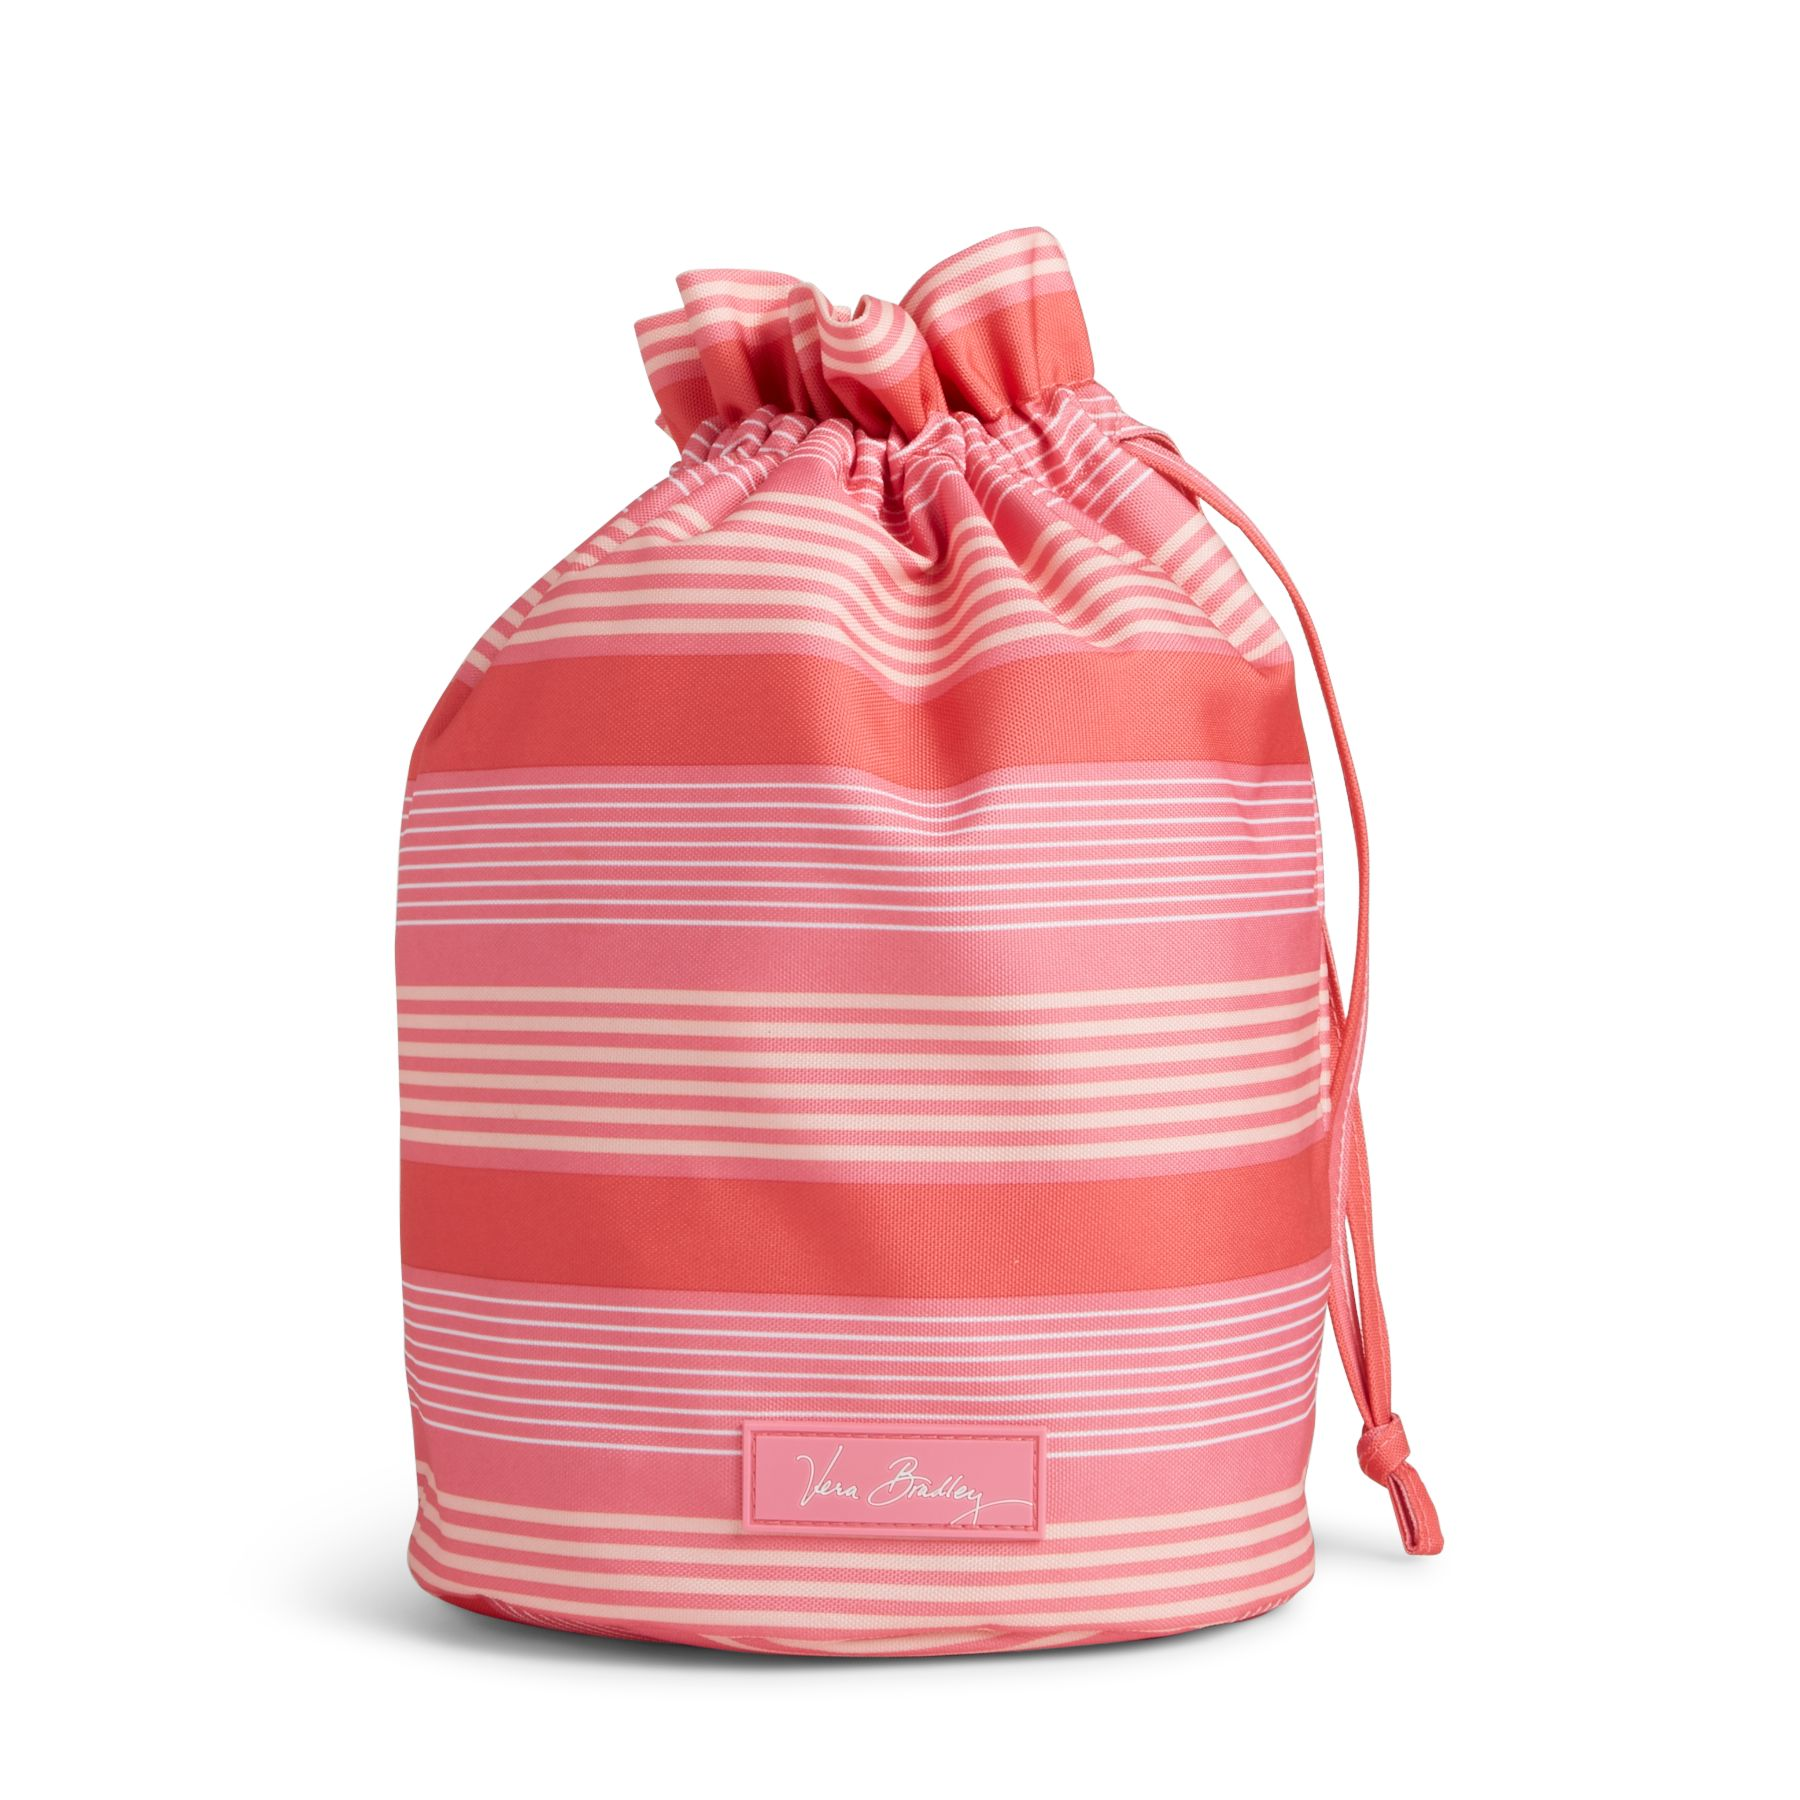 Vera Bradley Lighten Up Ditty Bag in Pink Tonal Stripe